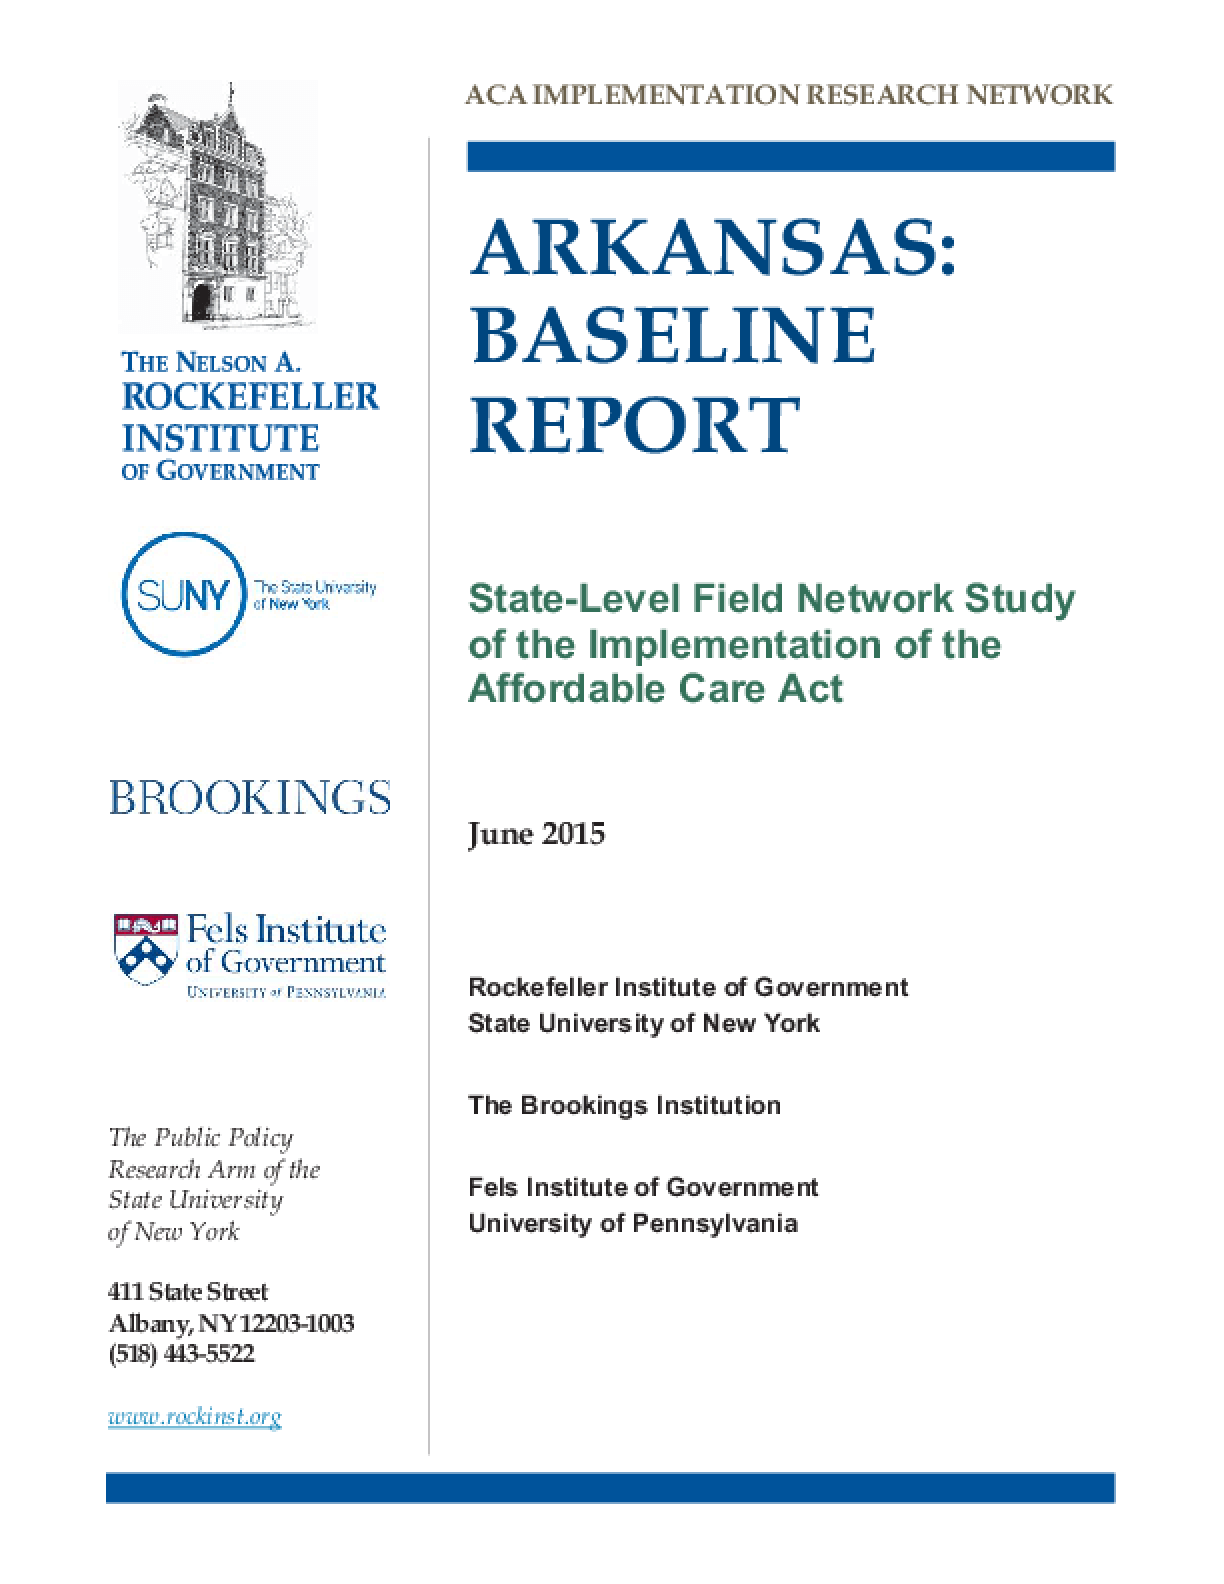 Arkansas: Baseline Report - State-Level Field Network Study of the Implementation of the Affordable Care Act